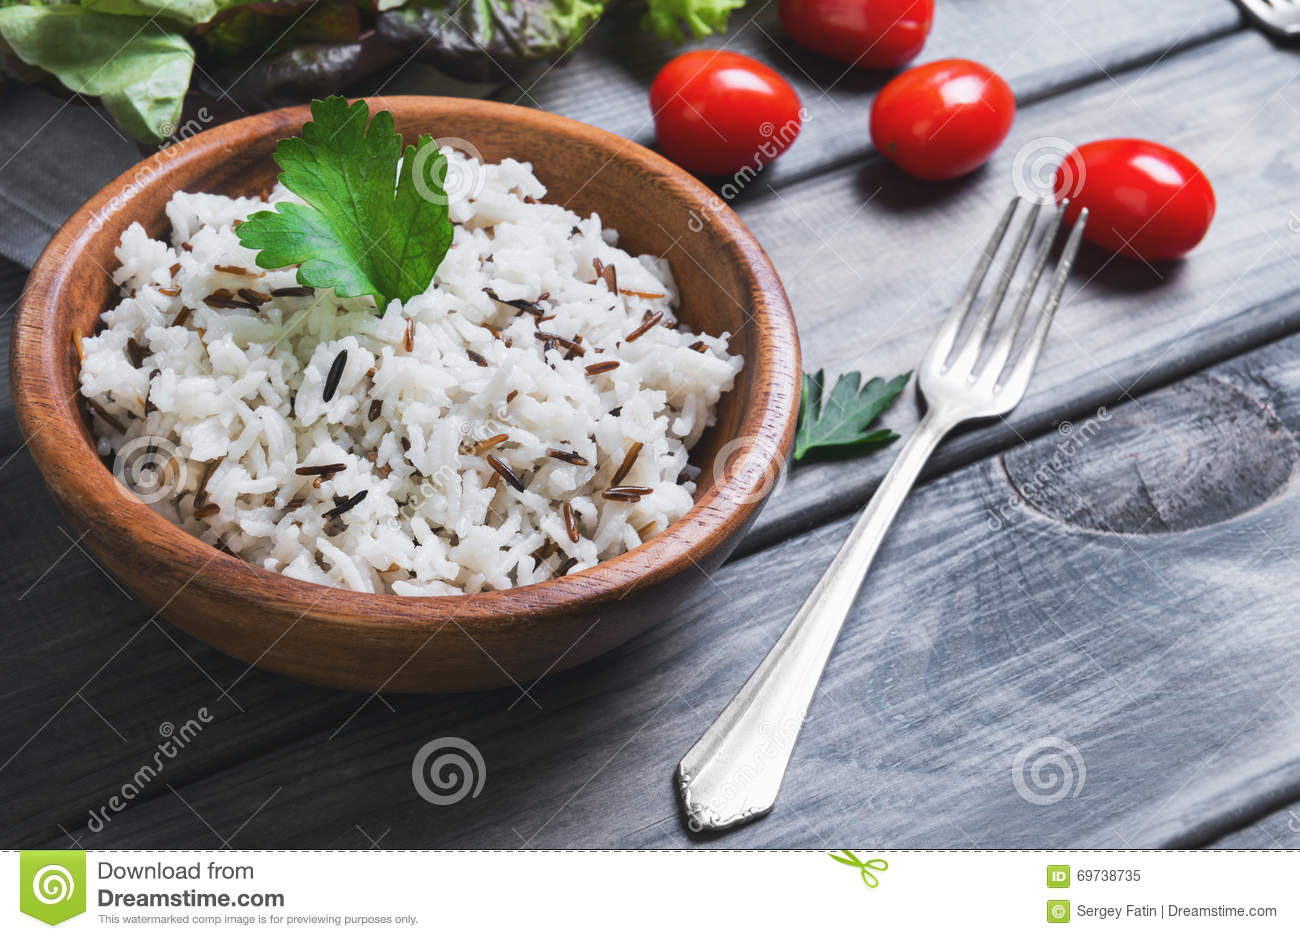 Wooden bowl with cooked white long-grain and wild rice